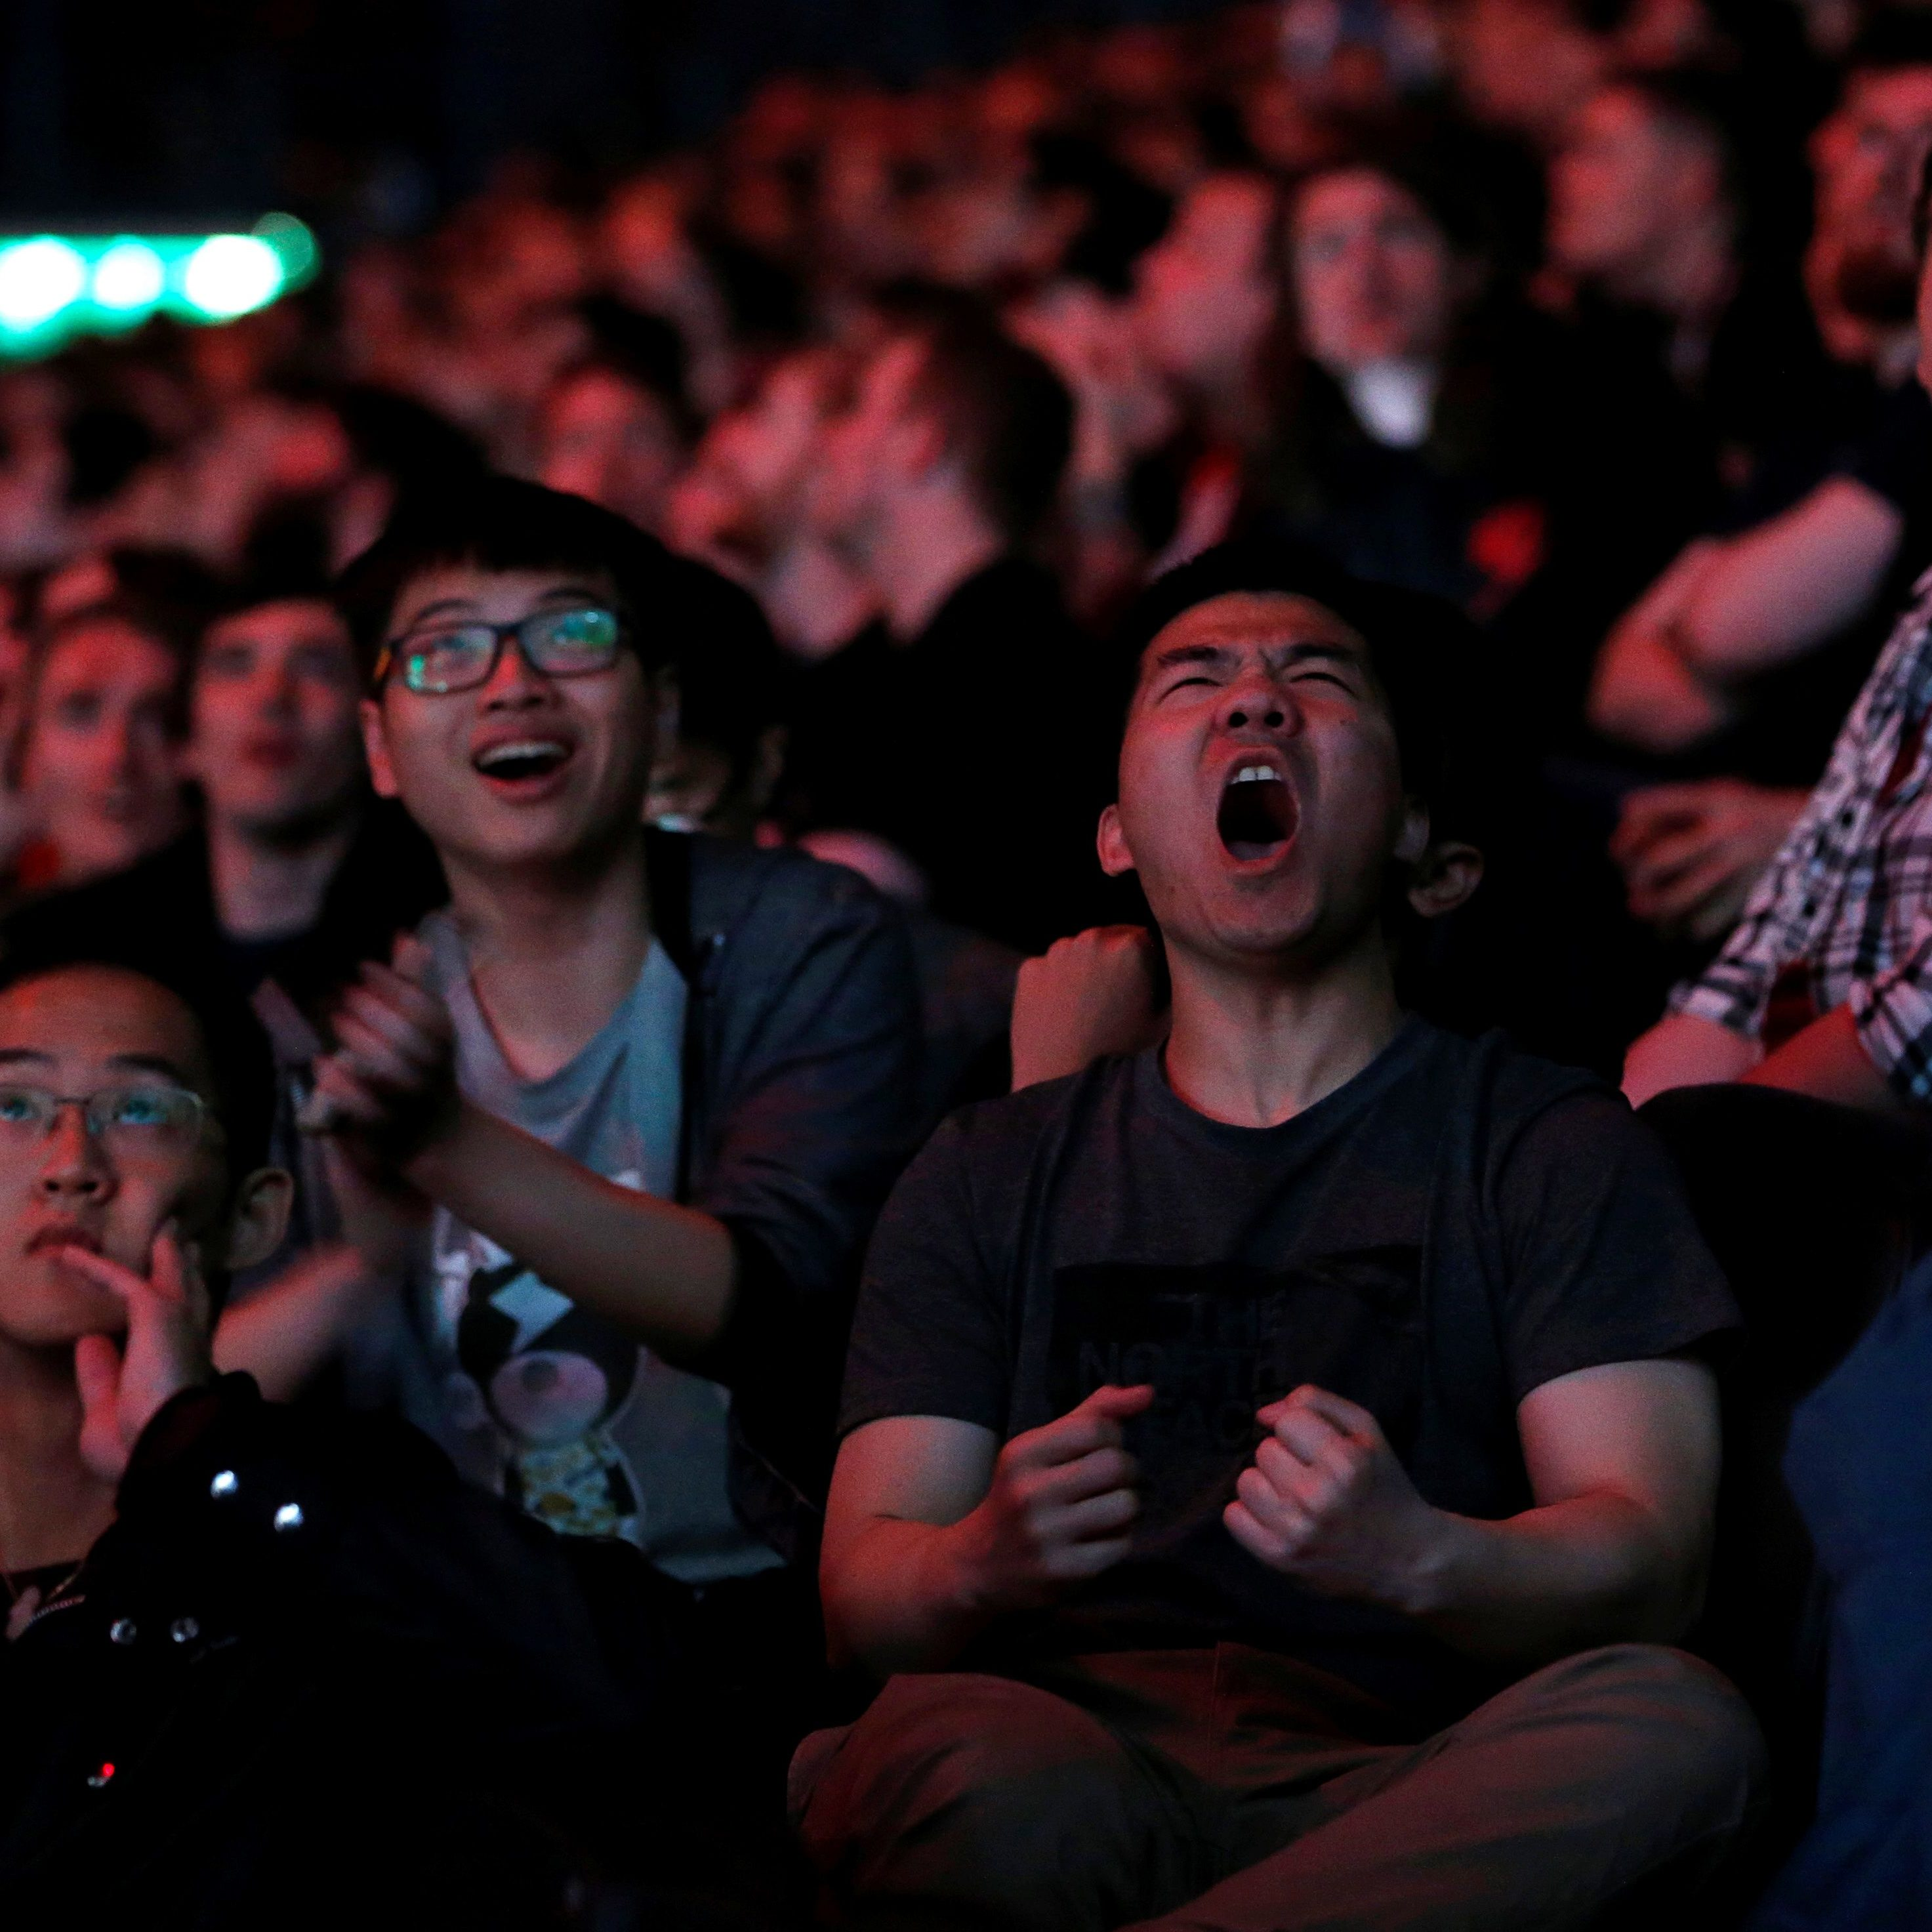 Esports fans react as they watch on from the stands.